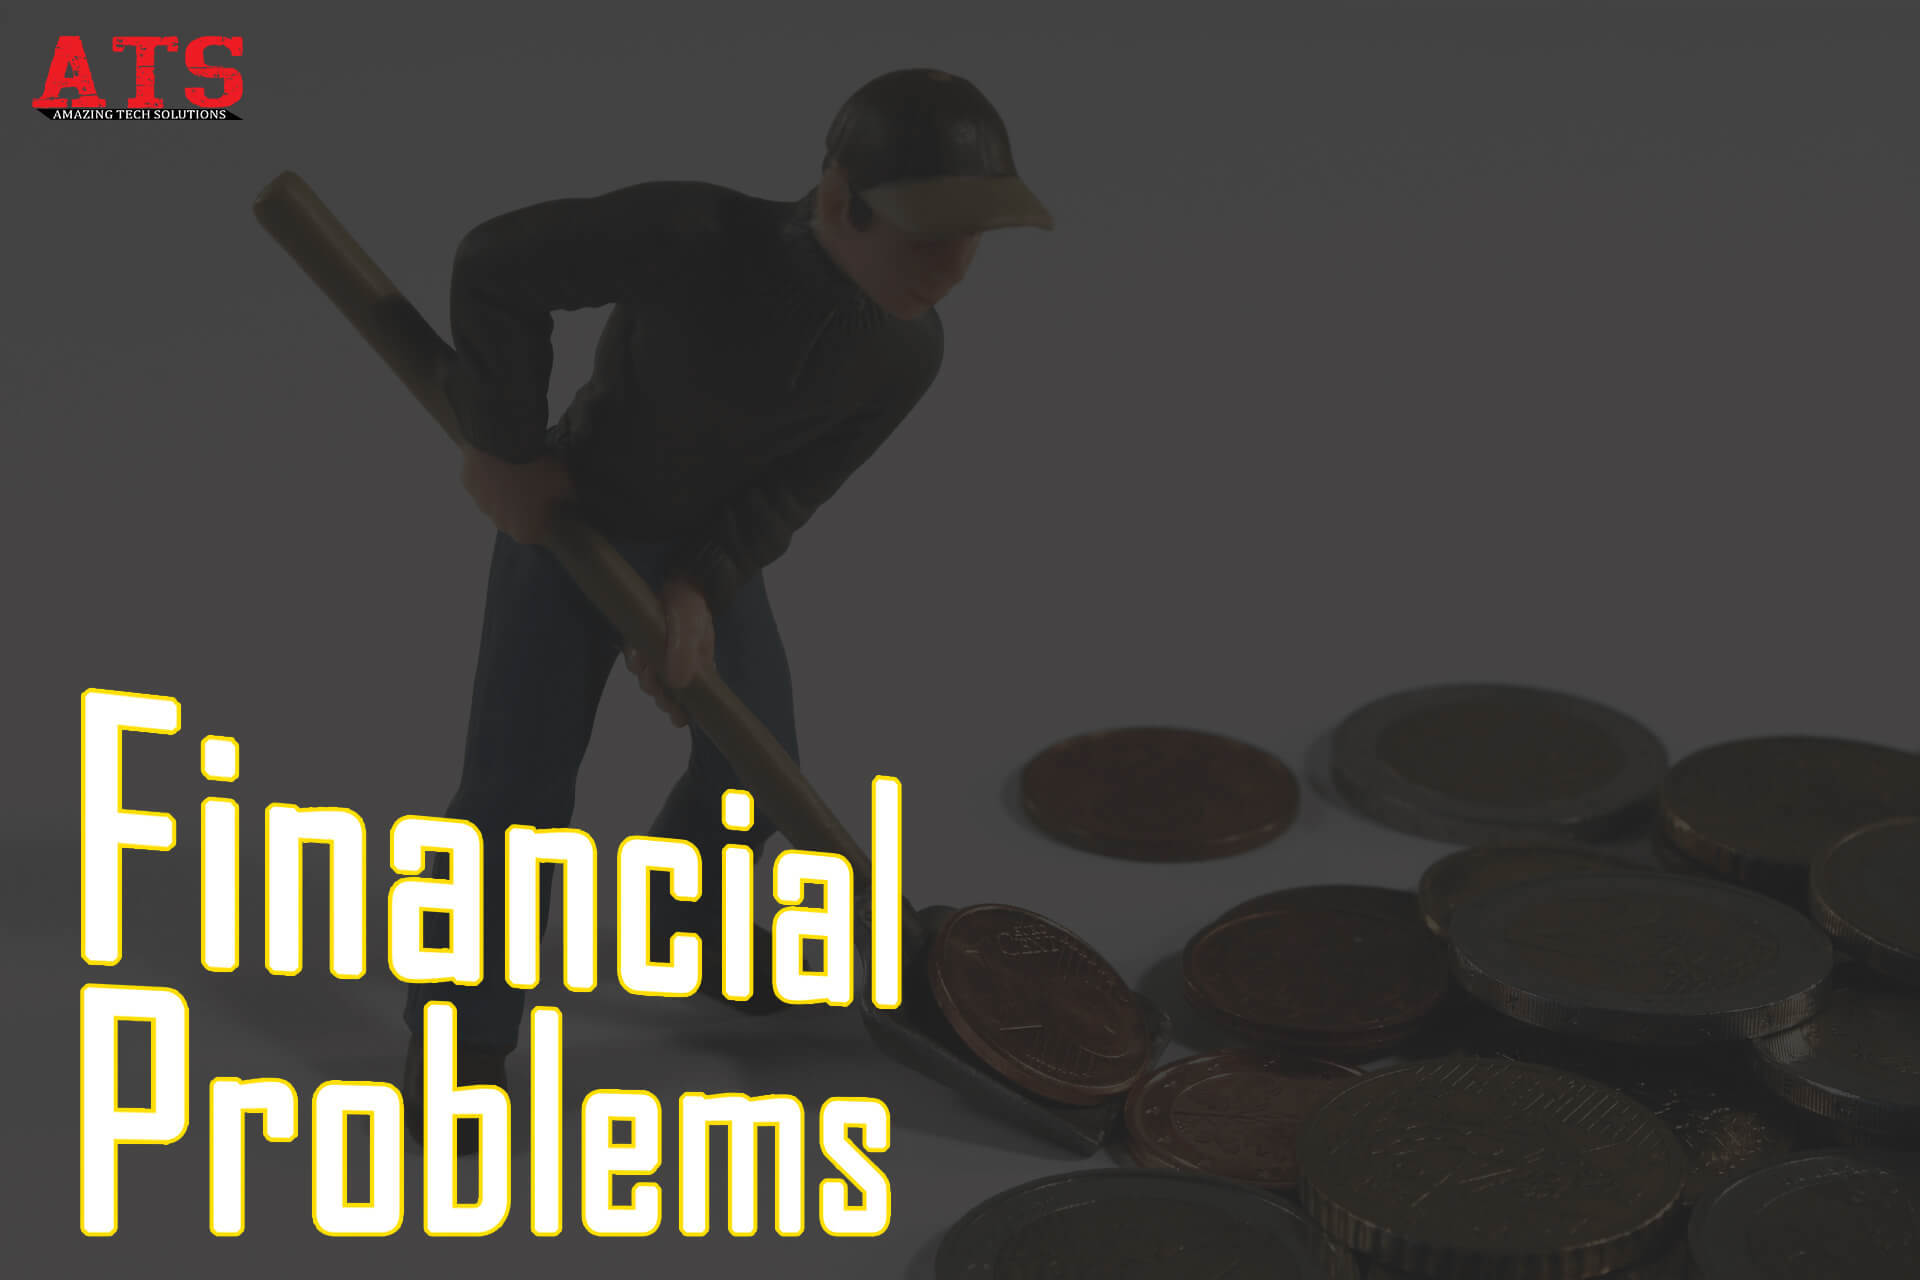 Financial problems for business